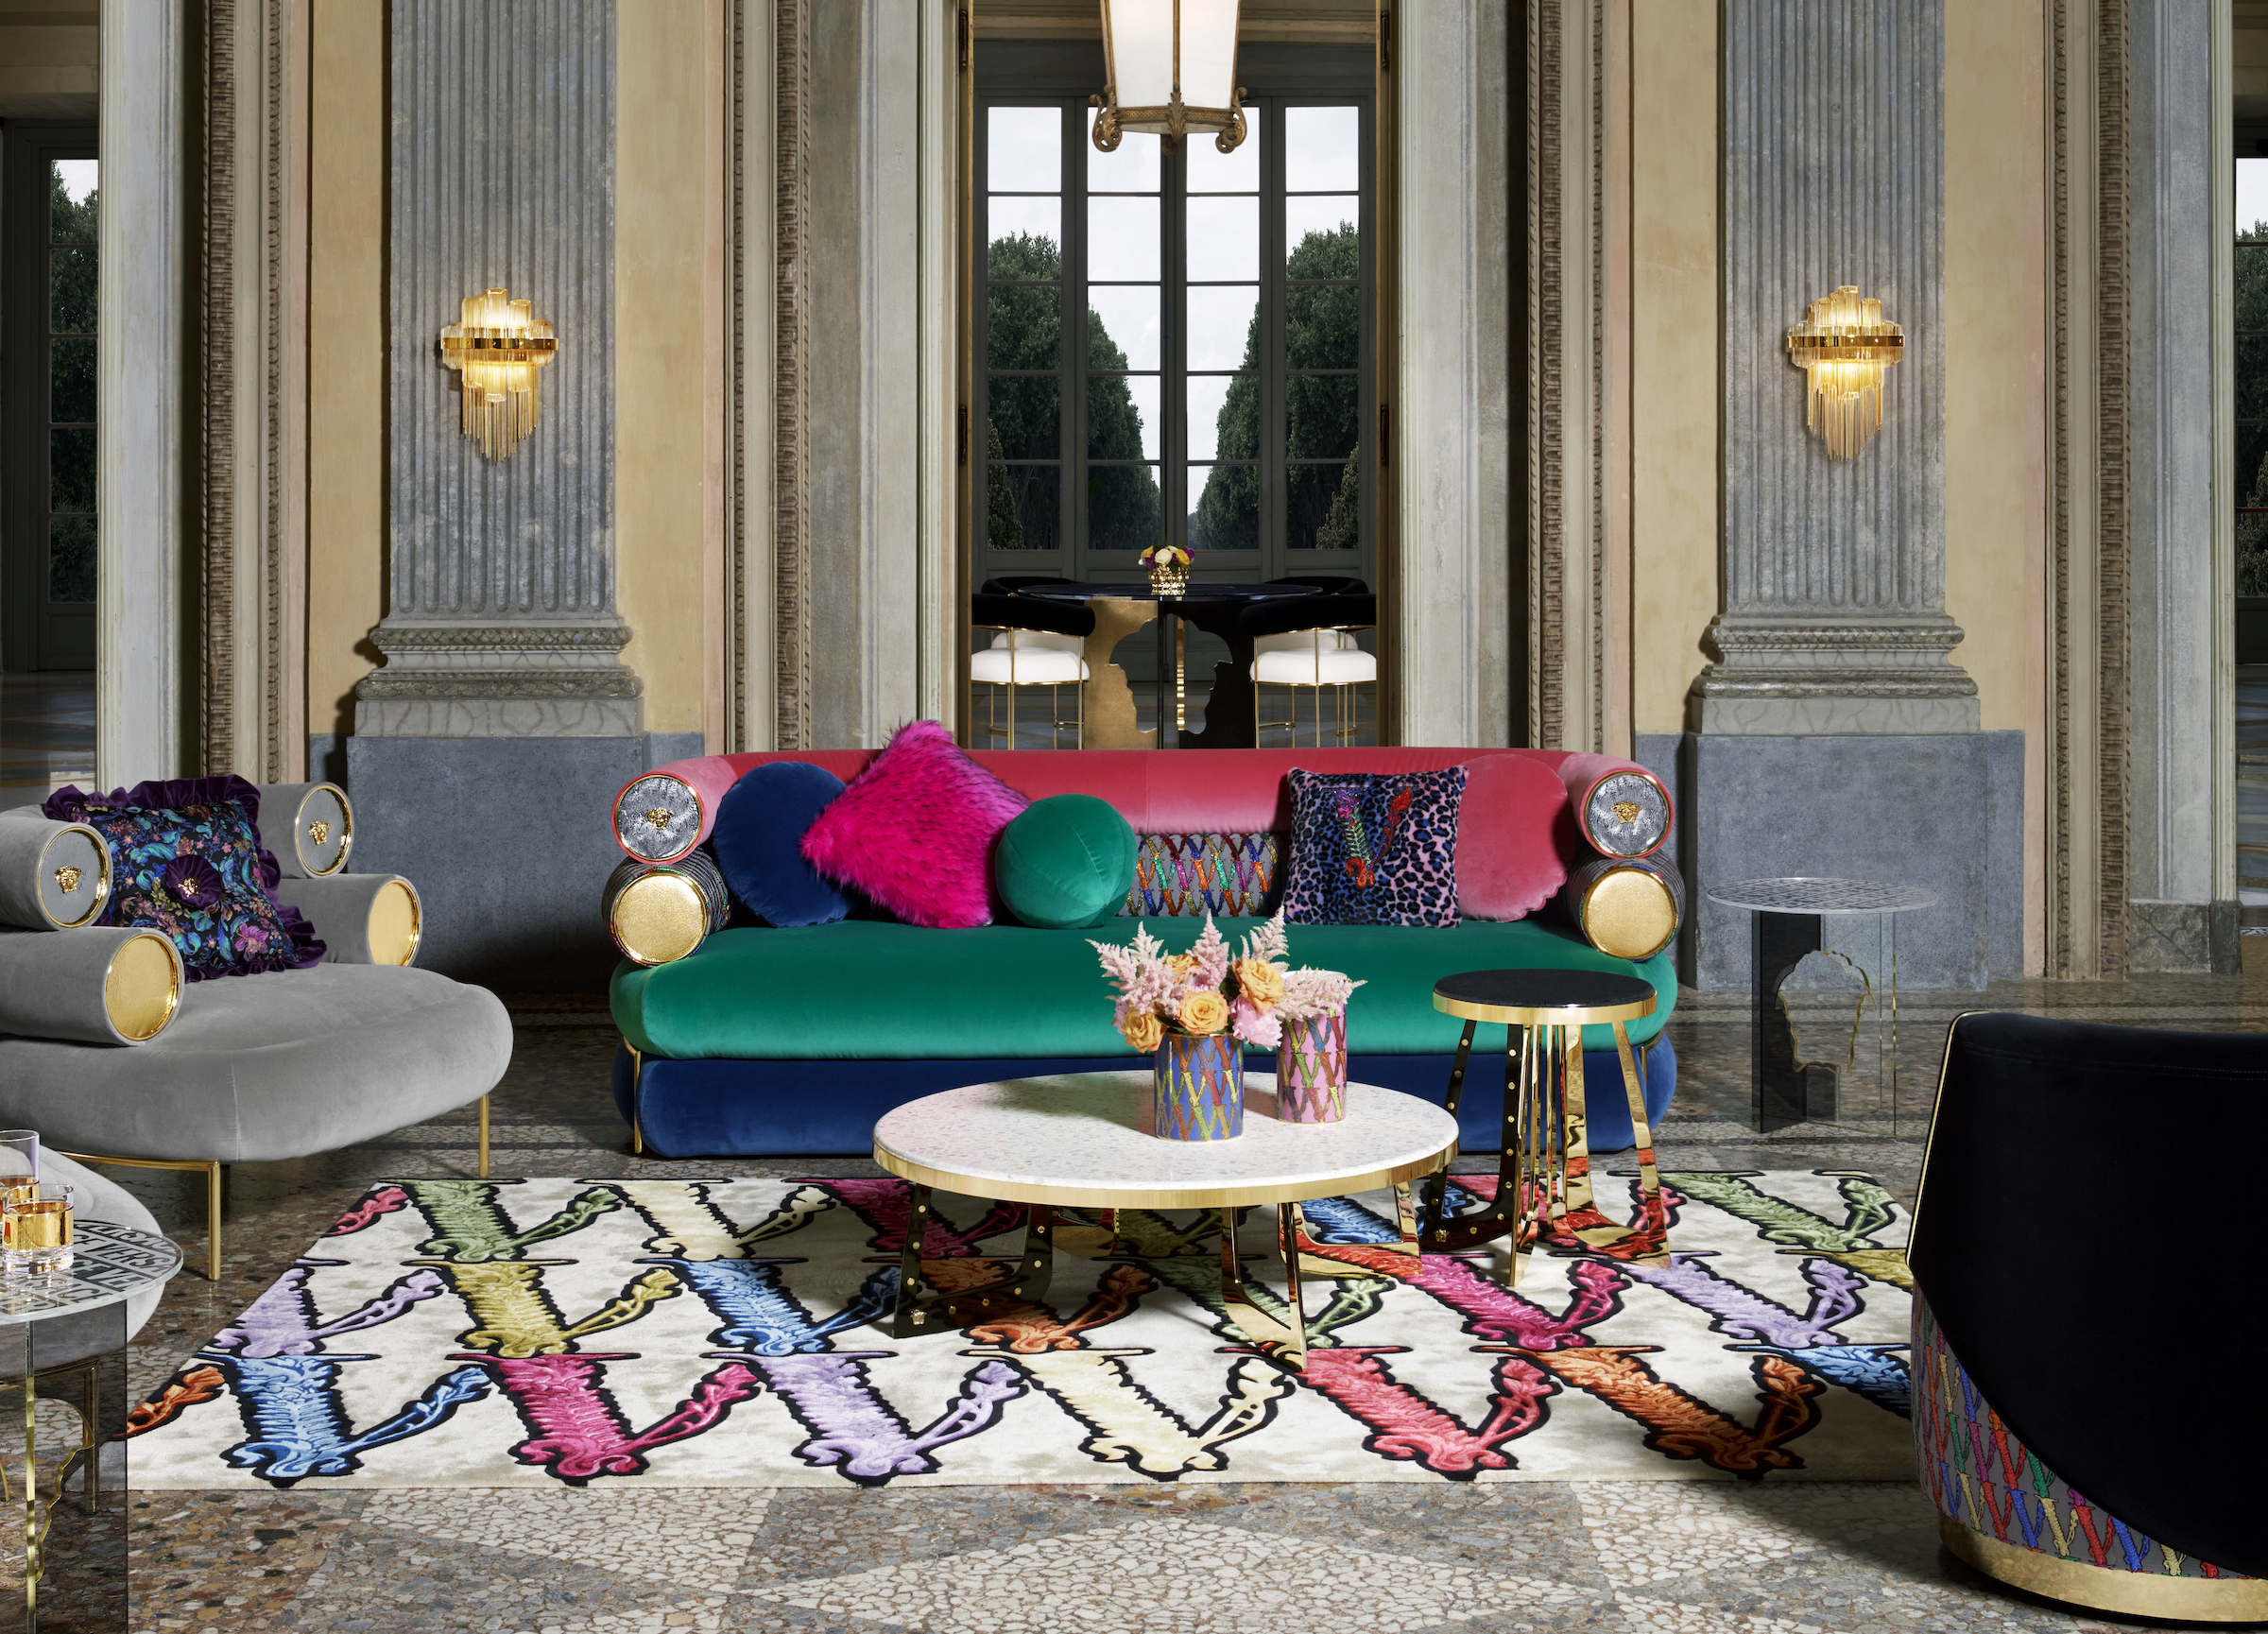 Versace S Home Collection 2020 Captures The Essence Of Luxury Living